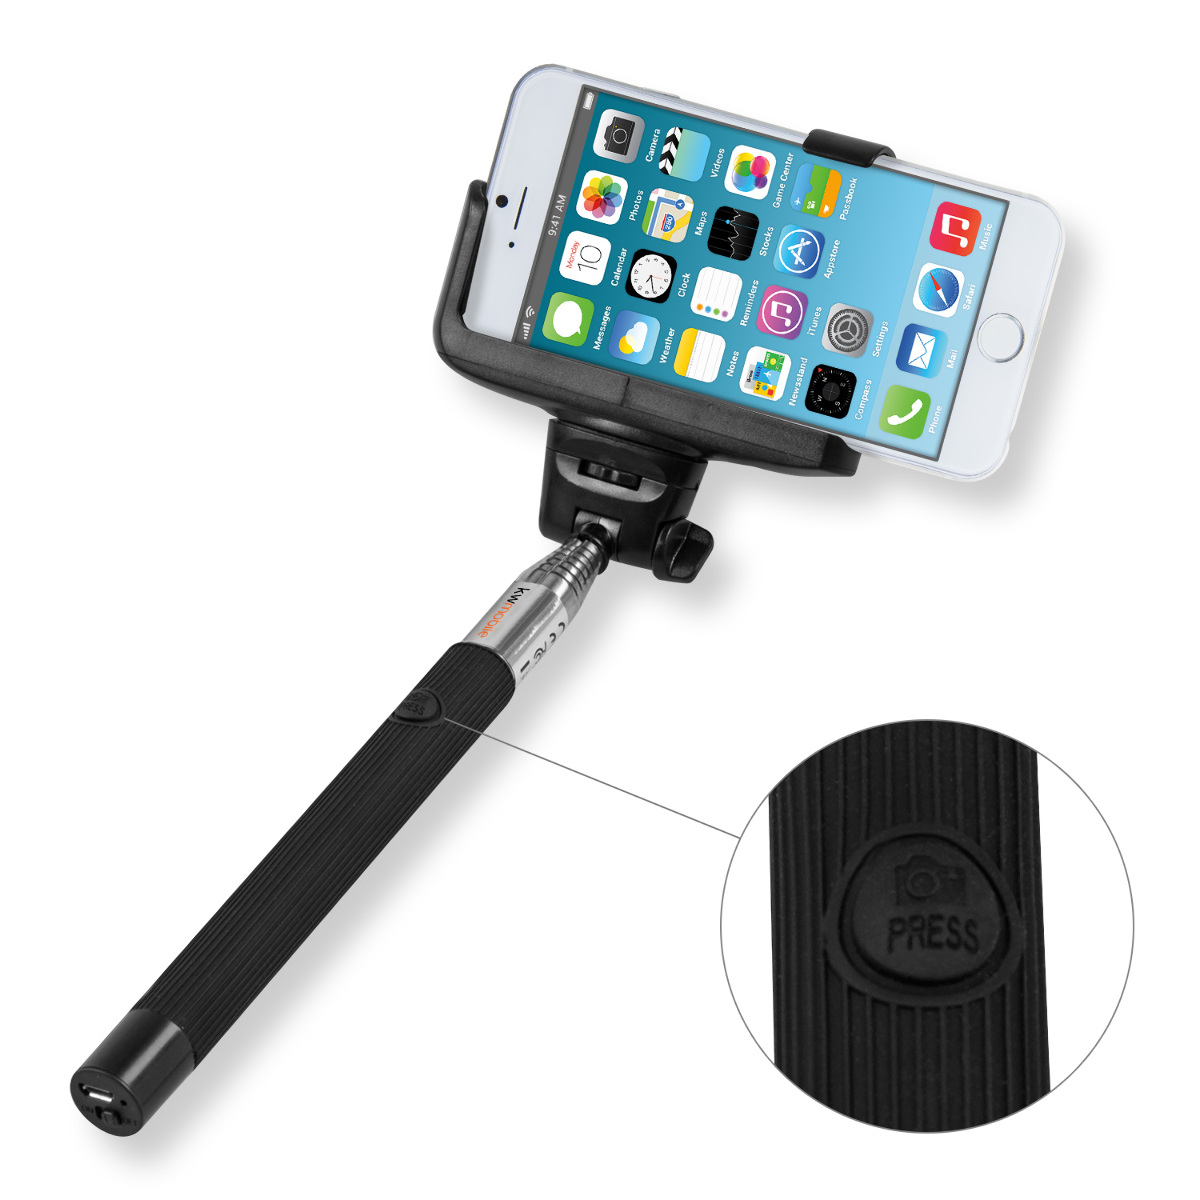 kwmobile monopiede selfie stick montaggio remoto apple iphone 6 6s 7 iphone 6 ebay. Black Bedroom Furniture Sets. Home Design Ideas